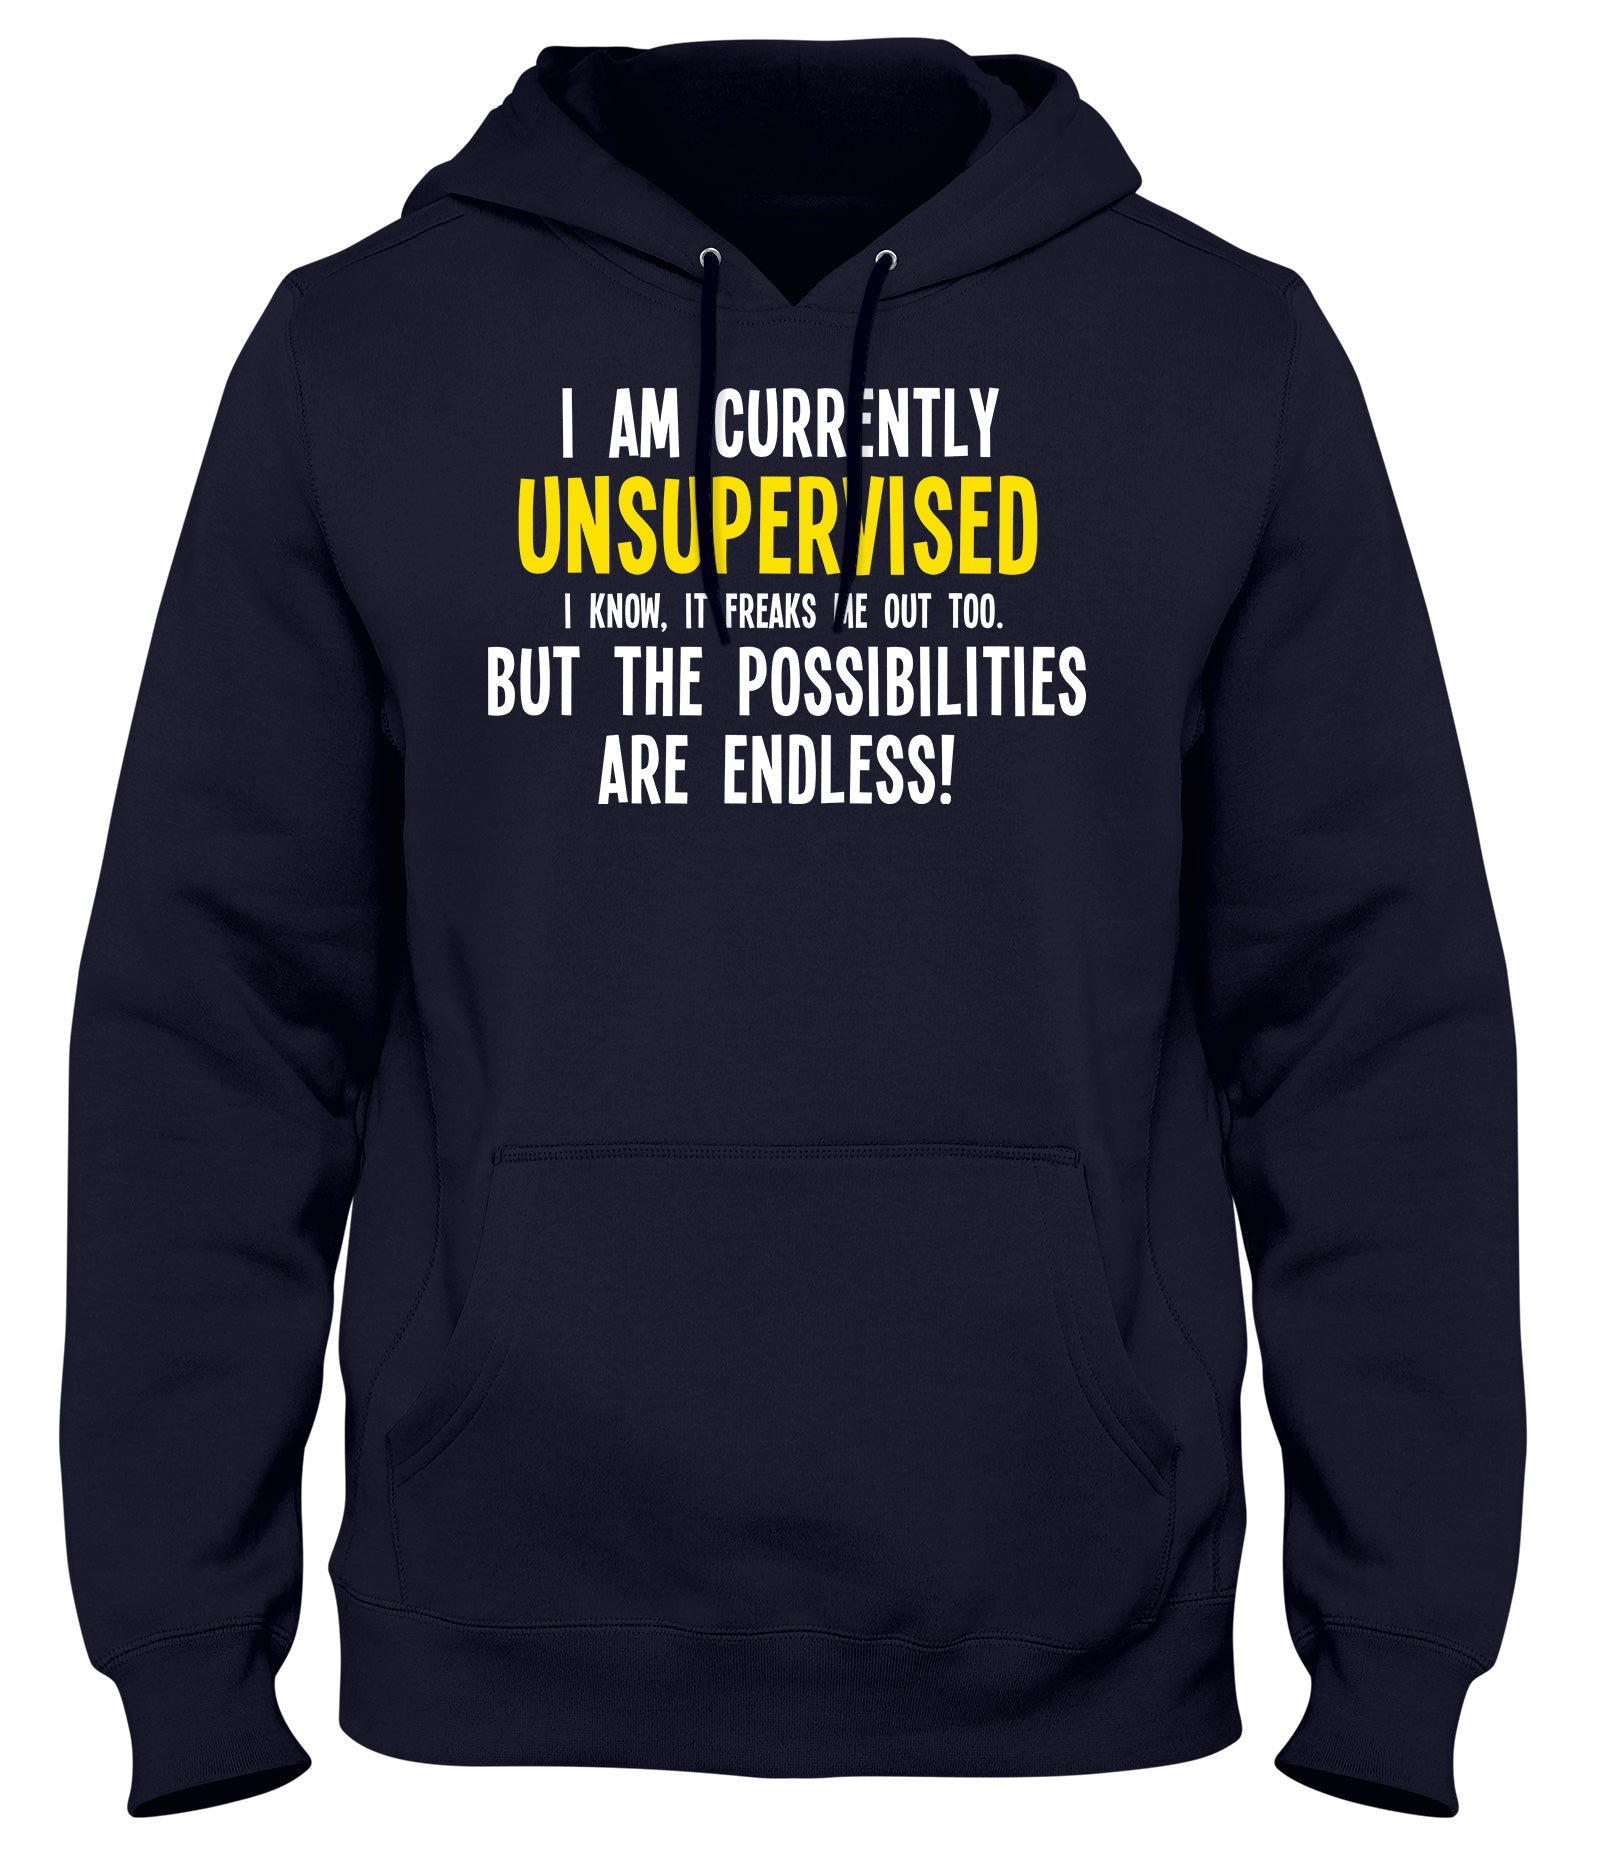 I AM CURRENTLY UNSUPERVISED THE POSSIBILITIES ARE ENDLESS! MENS WOMENS LADIES UNISEX FUNNY SLOGAN HOODIE